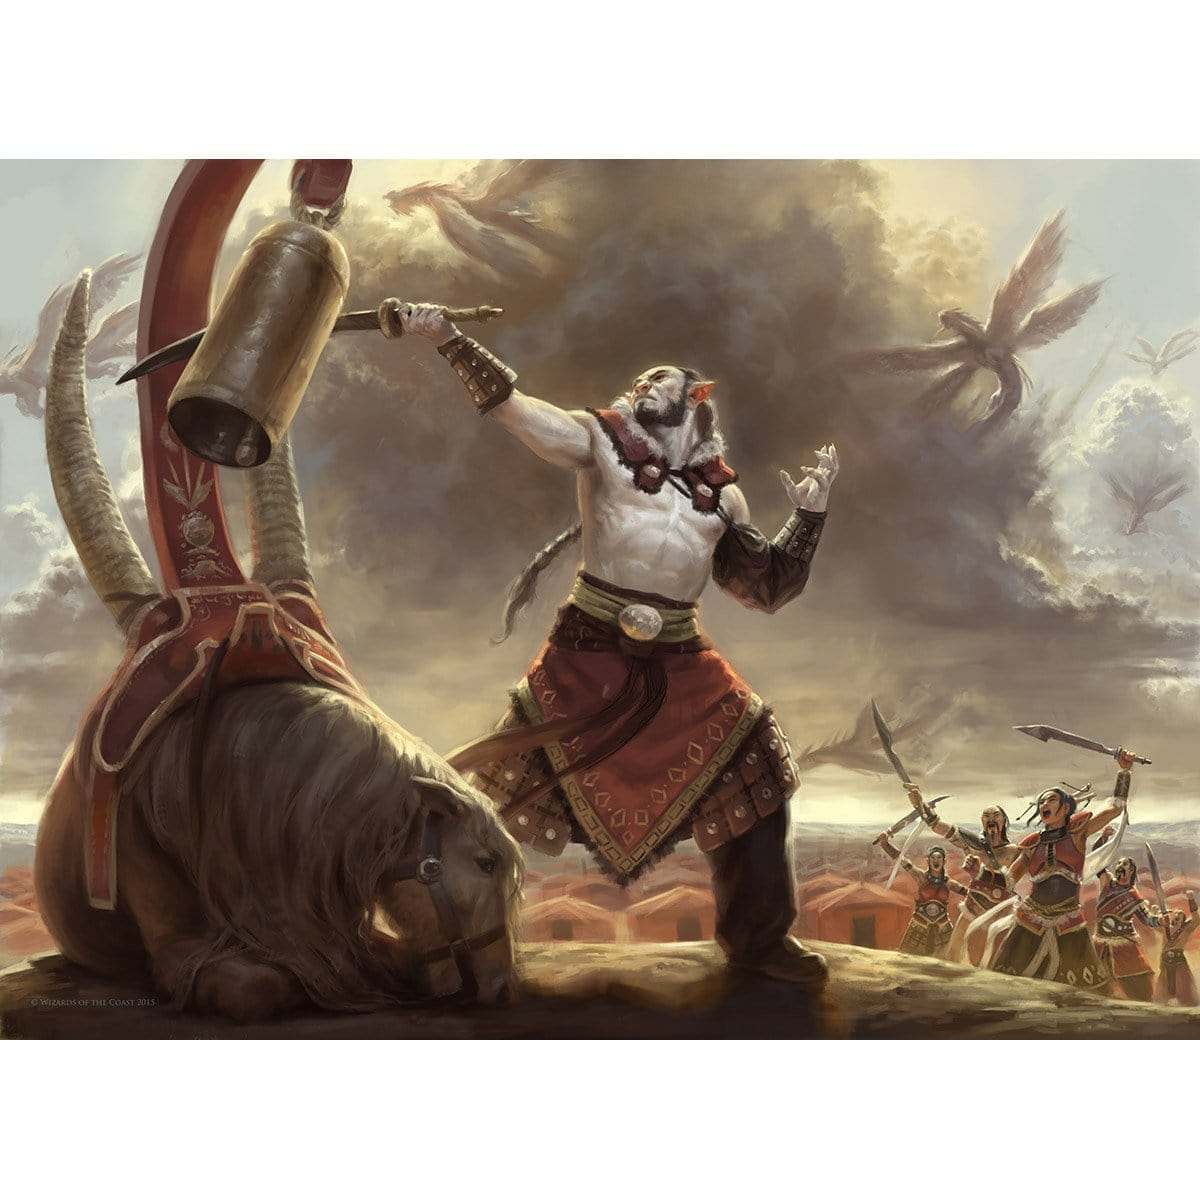 Zergo Bellstriker Print - Print - Original Magic Art - Accessories for Magic the Gathering and other card games